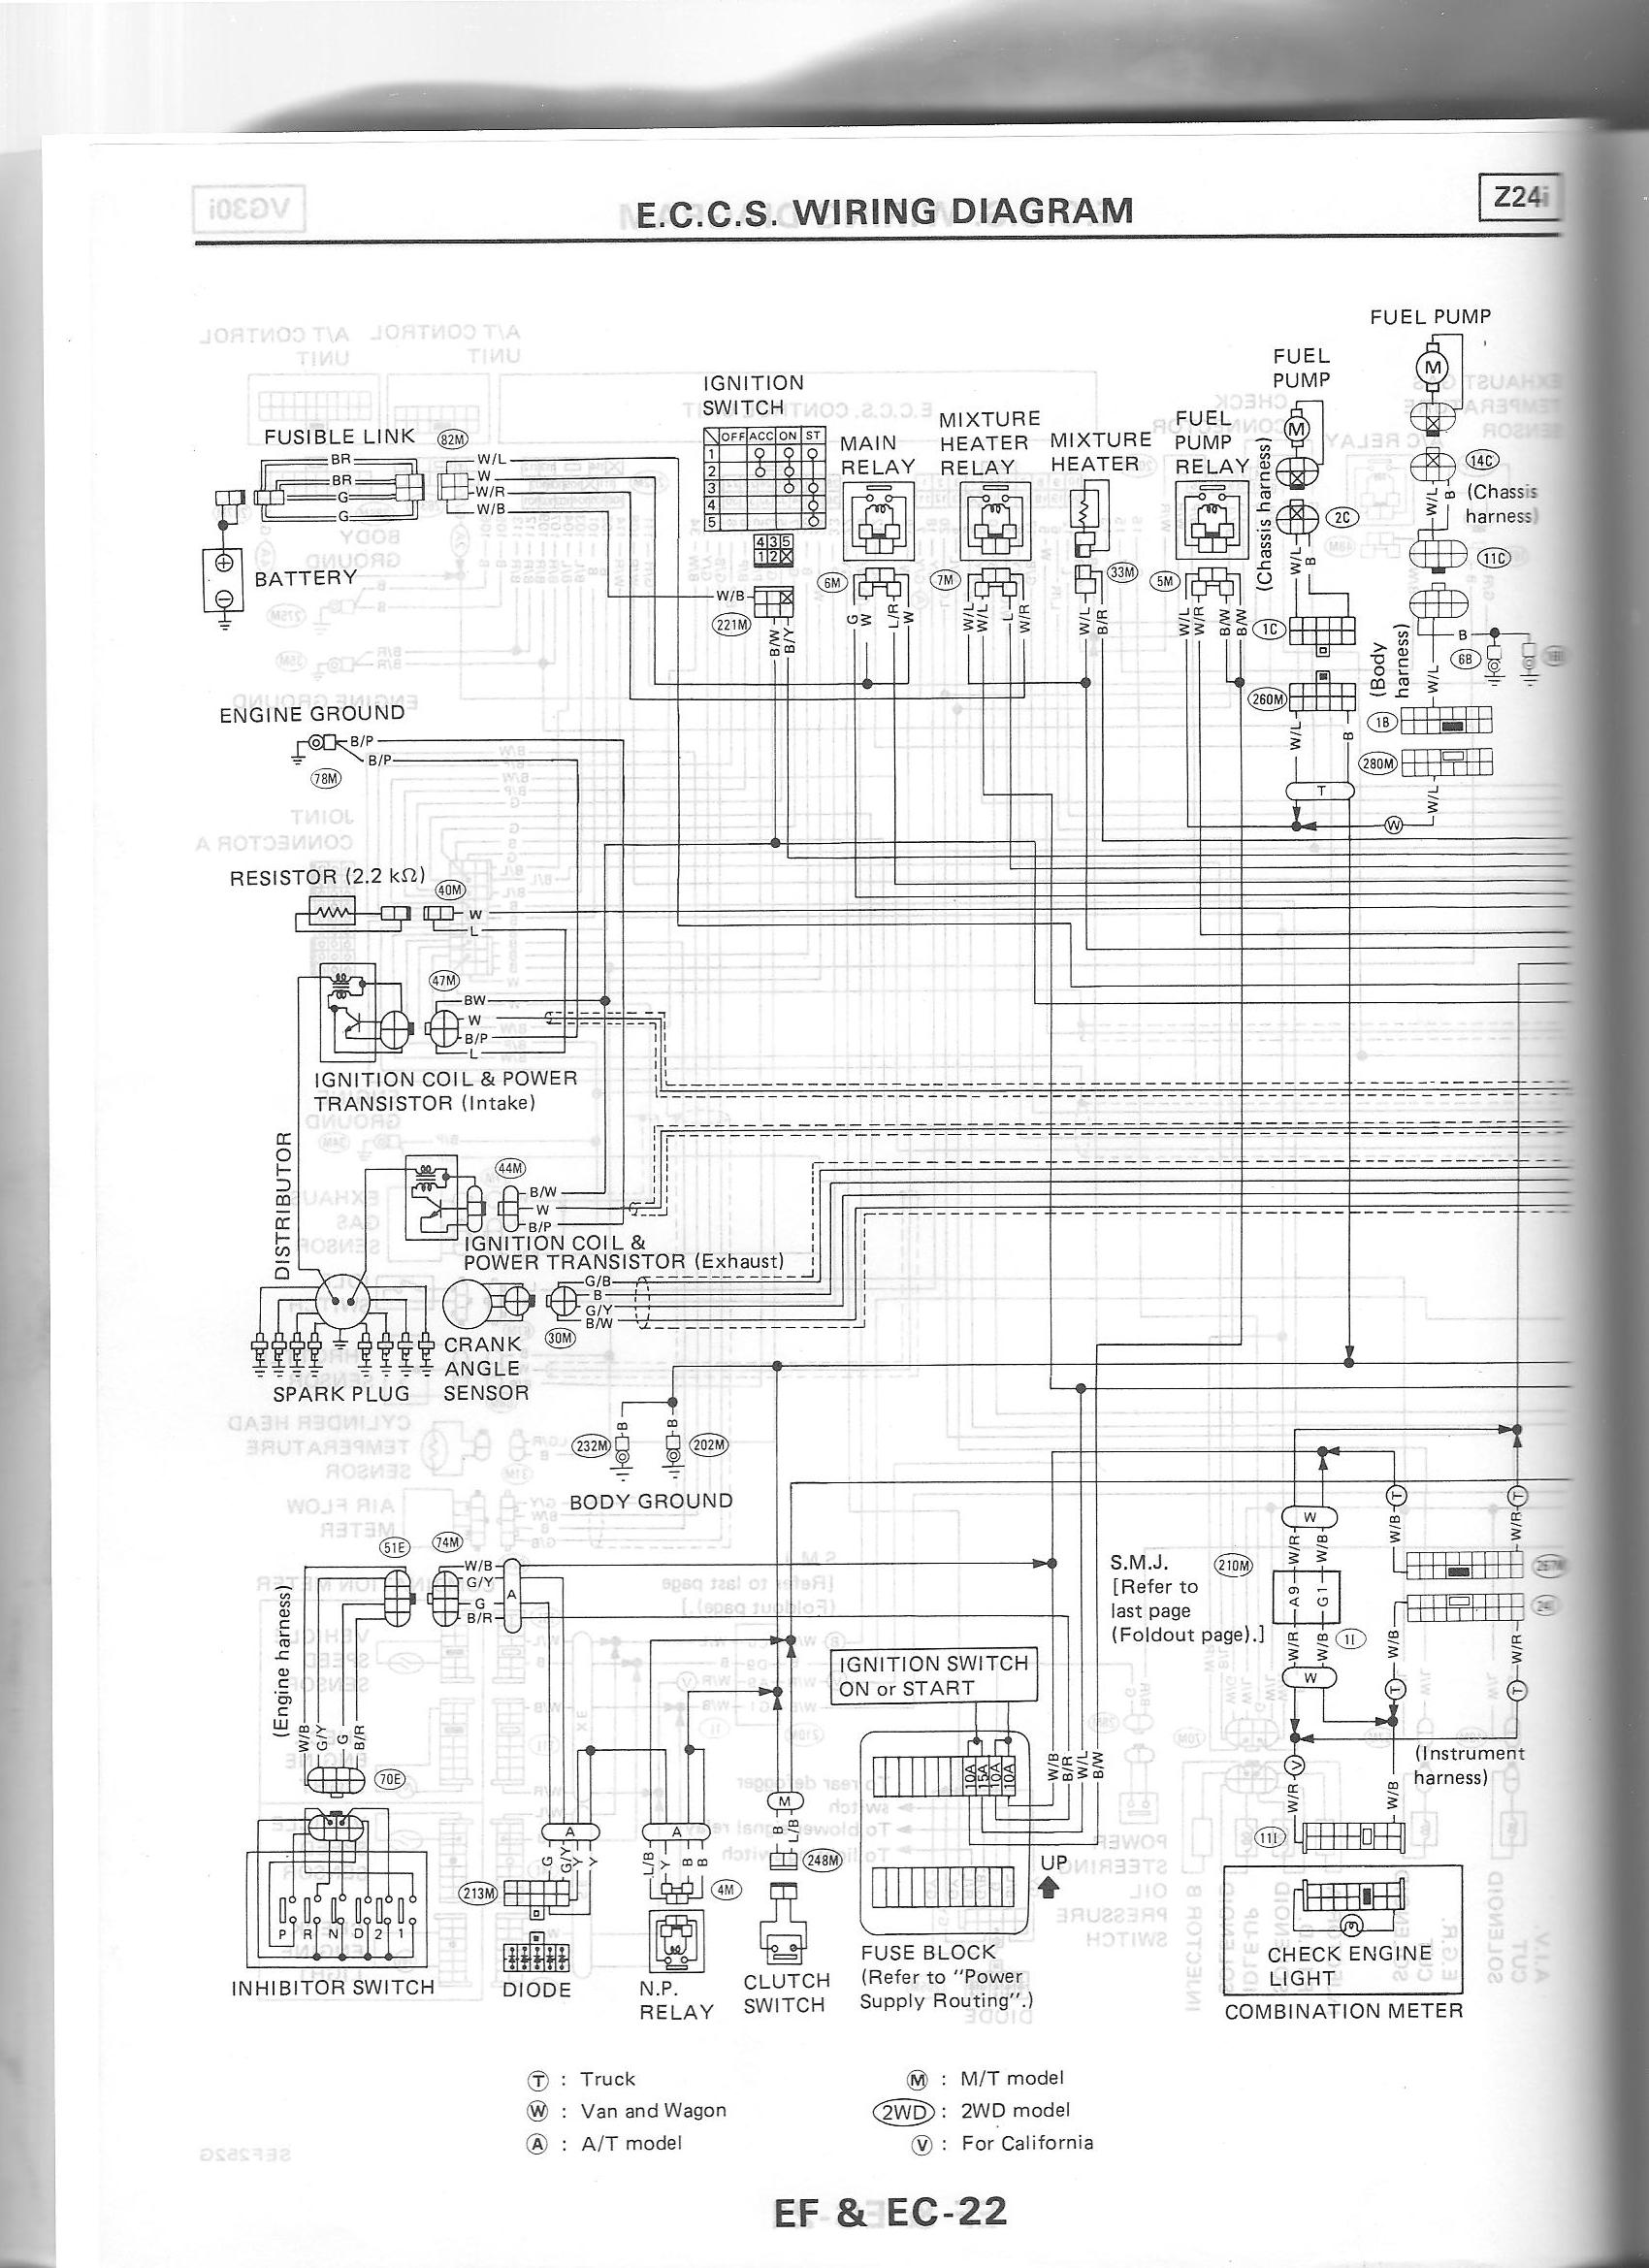 sr20 coolant diagram best wiring libraryka24e engine diagram wiring library rh 55 skriptoase de nissan sr20 engine nissan ka24e engine performance